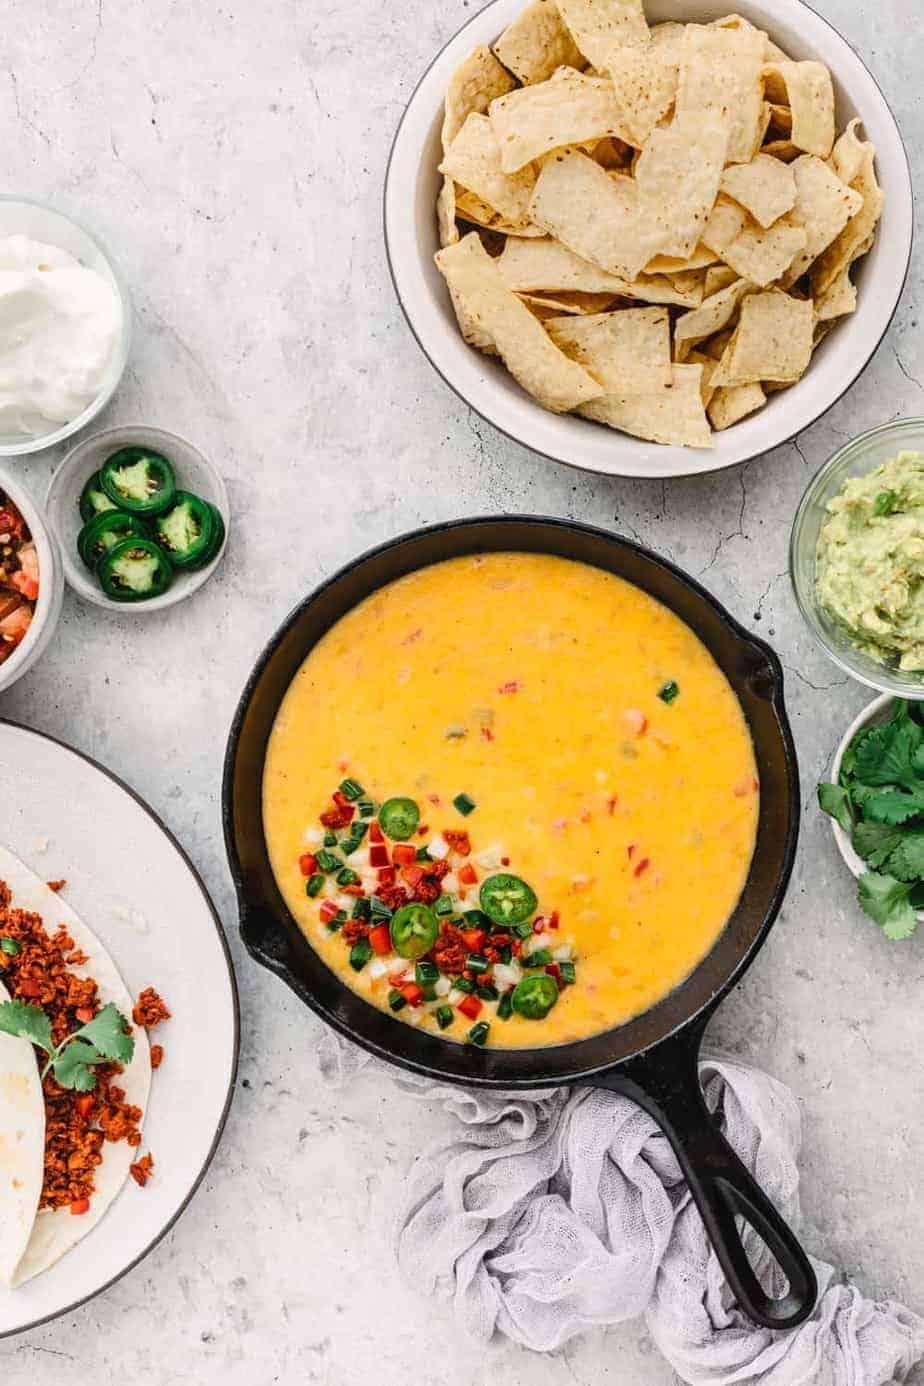 Instant Pot Queso Dip Recipe with Ground Beef, served with Mission Tortilla Strips